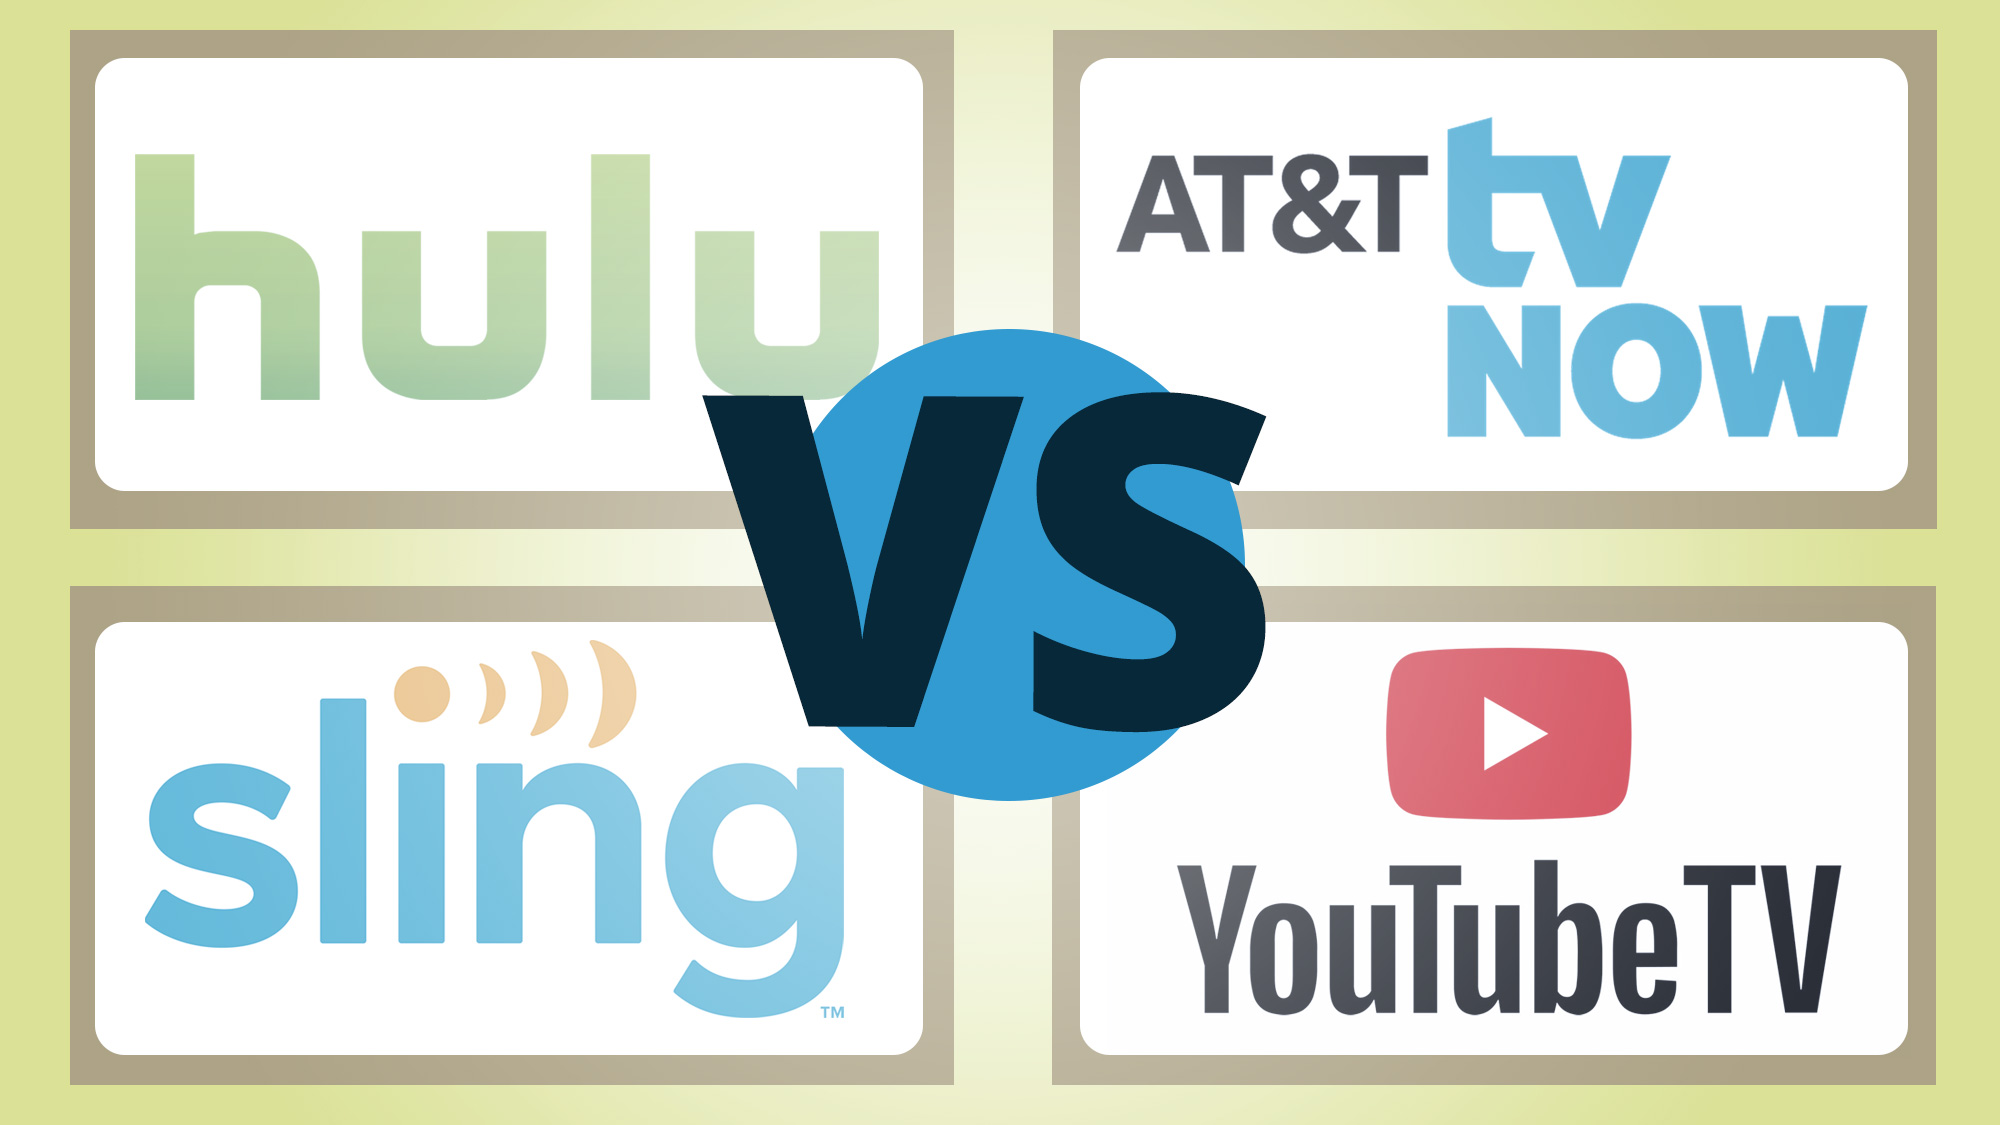 Hulu Live Vs Youtube Tv Vs Sling Vs At T Tv Now Face Off Tom S